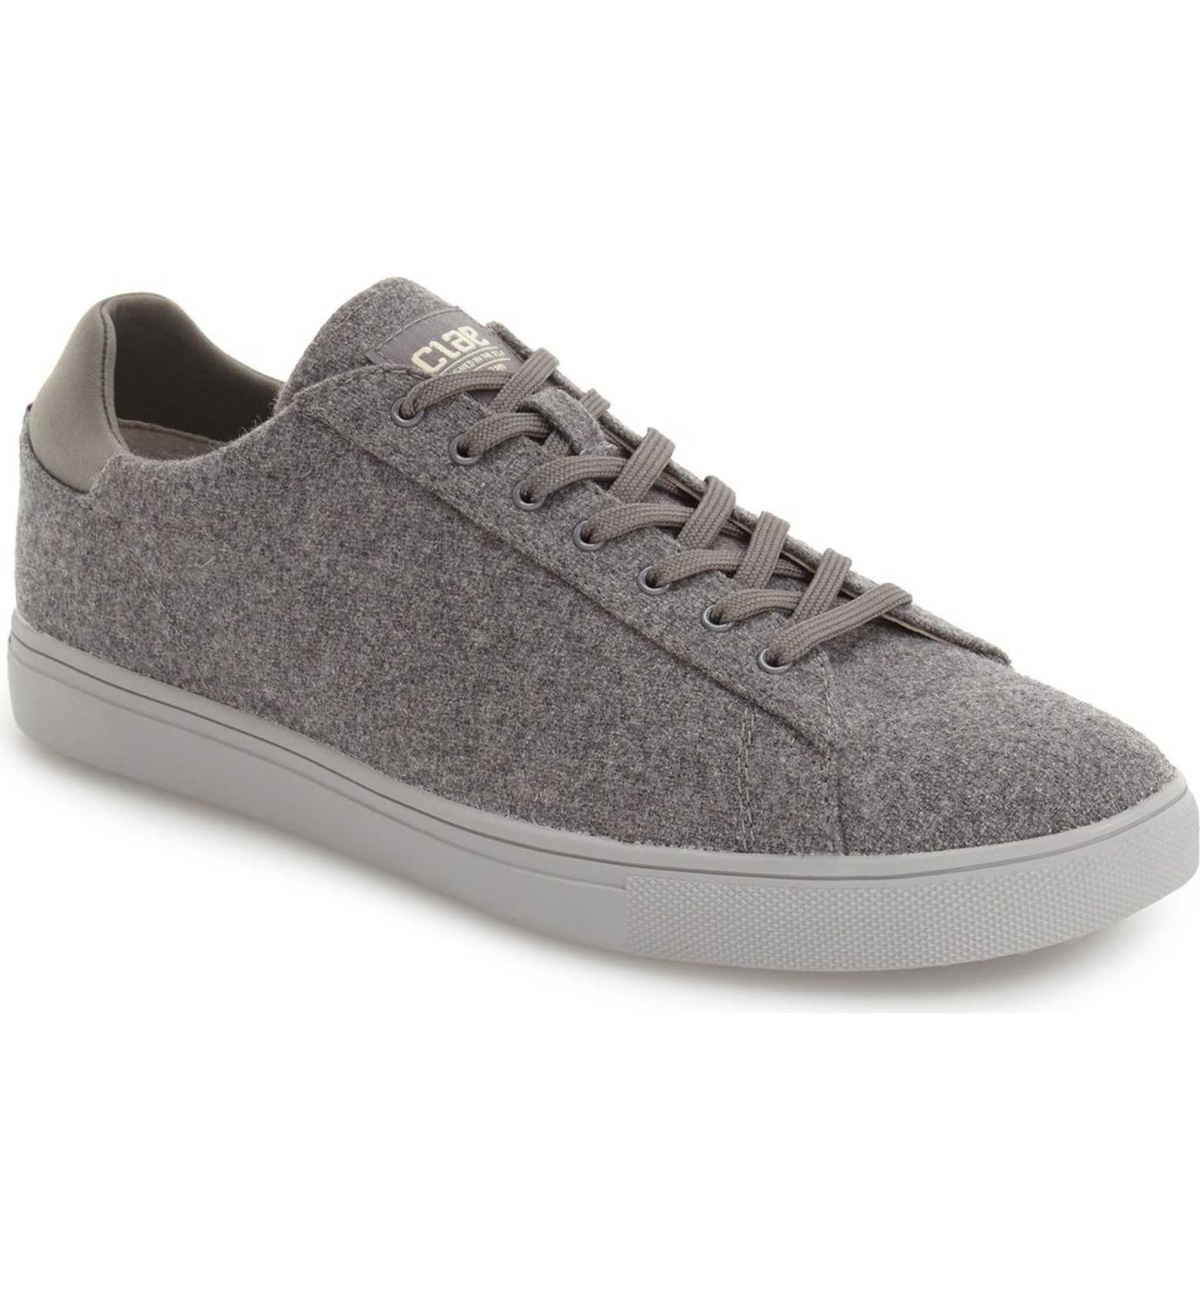 11 sneakers that are totally officeappropriate mens - HD1200×1289